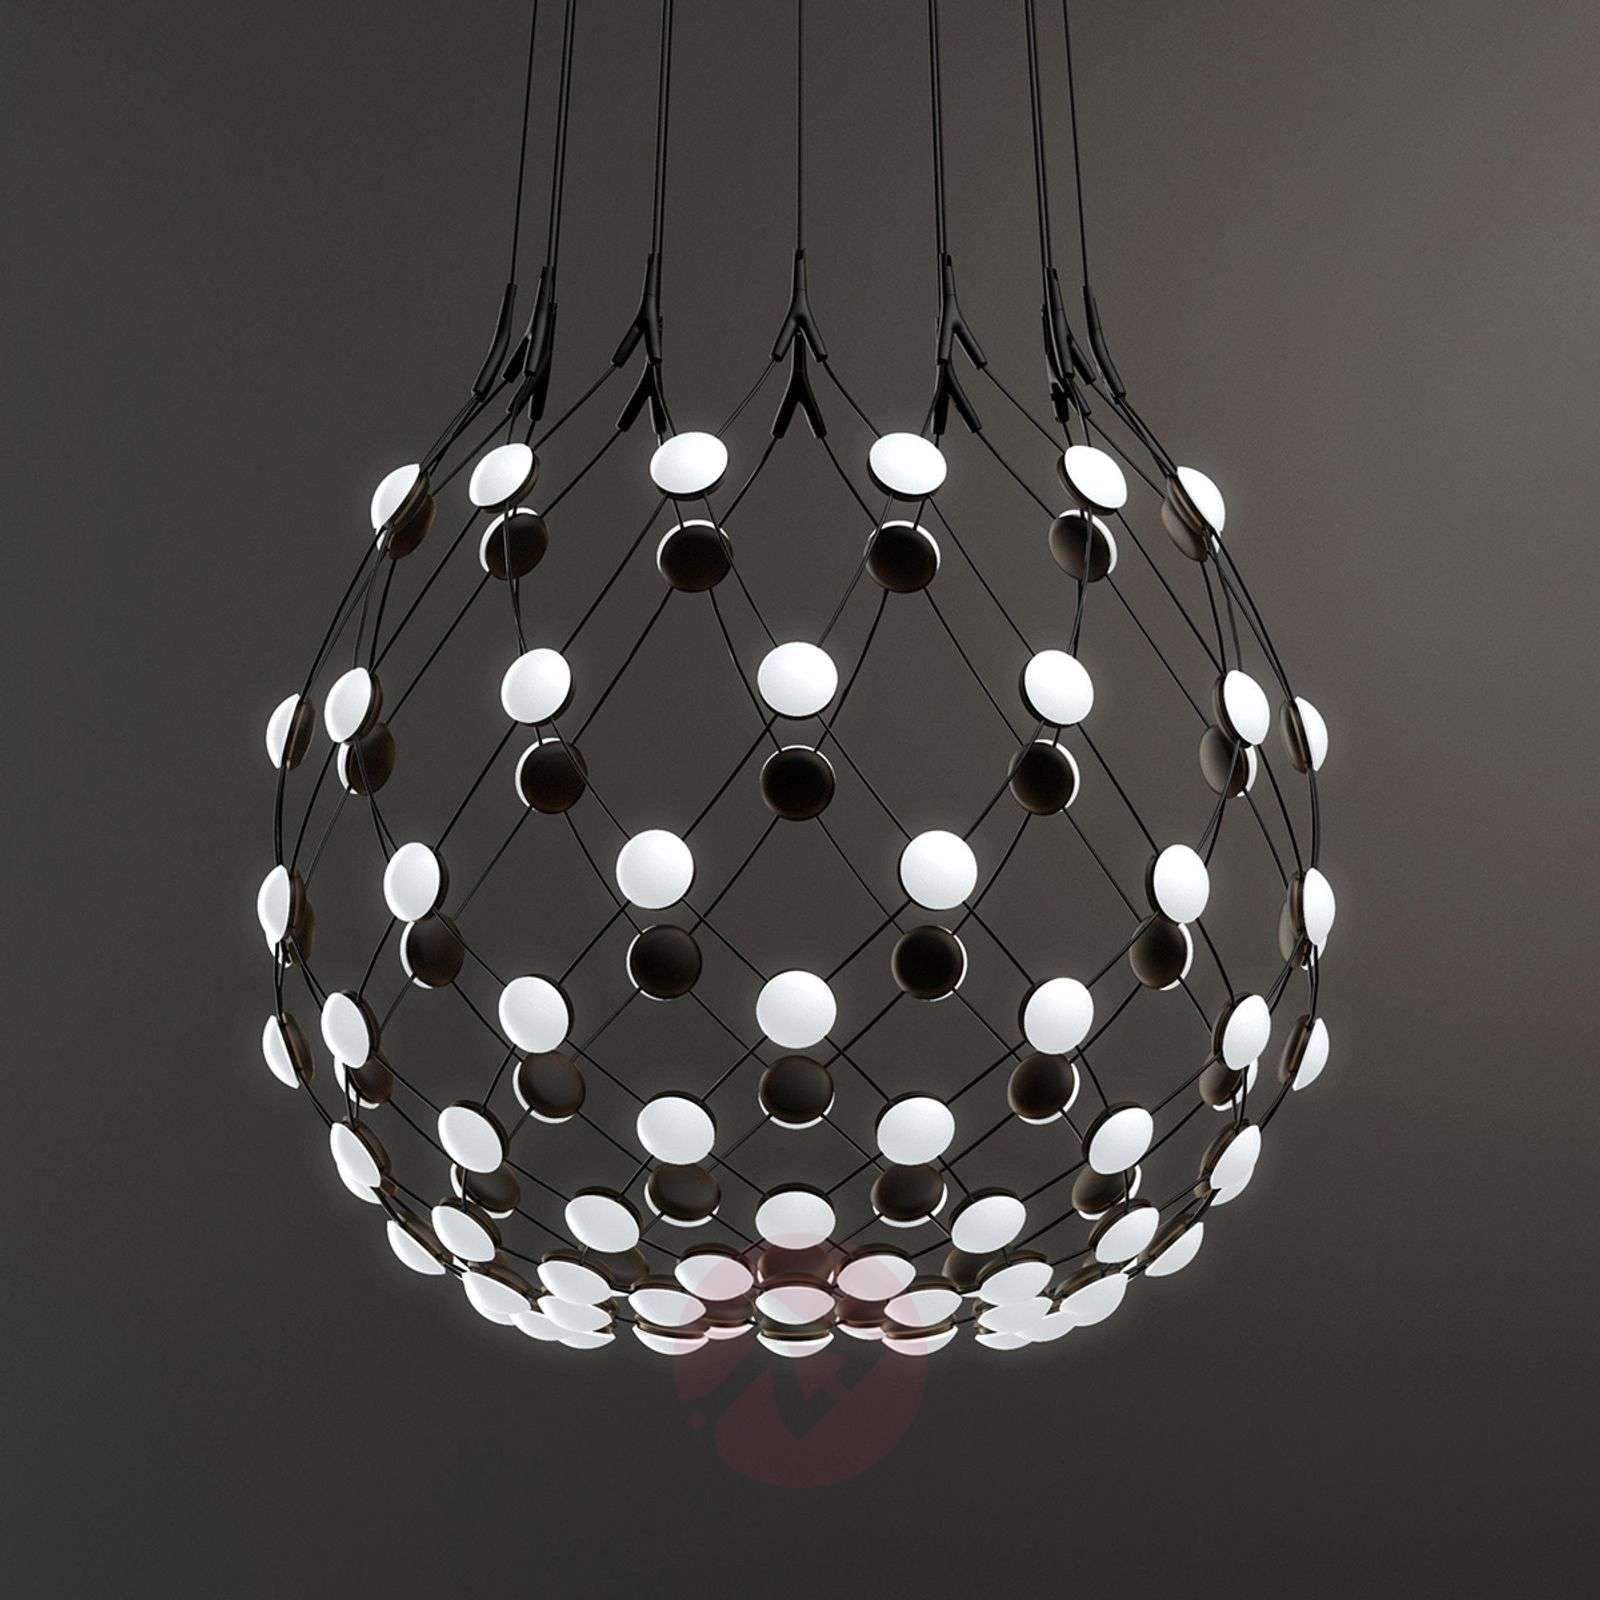 Luceplan Mesh pendant lamp Ø 80cm wireless-6030249X-01